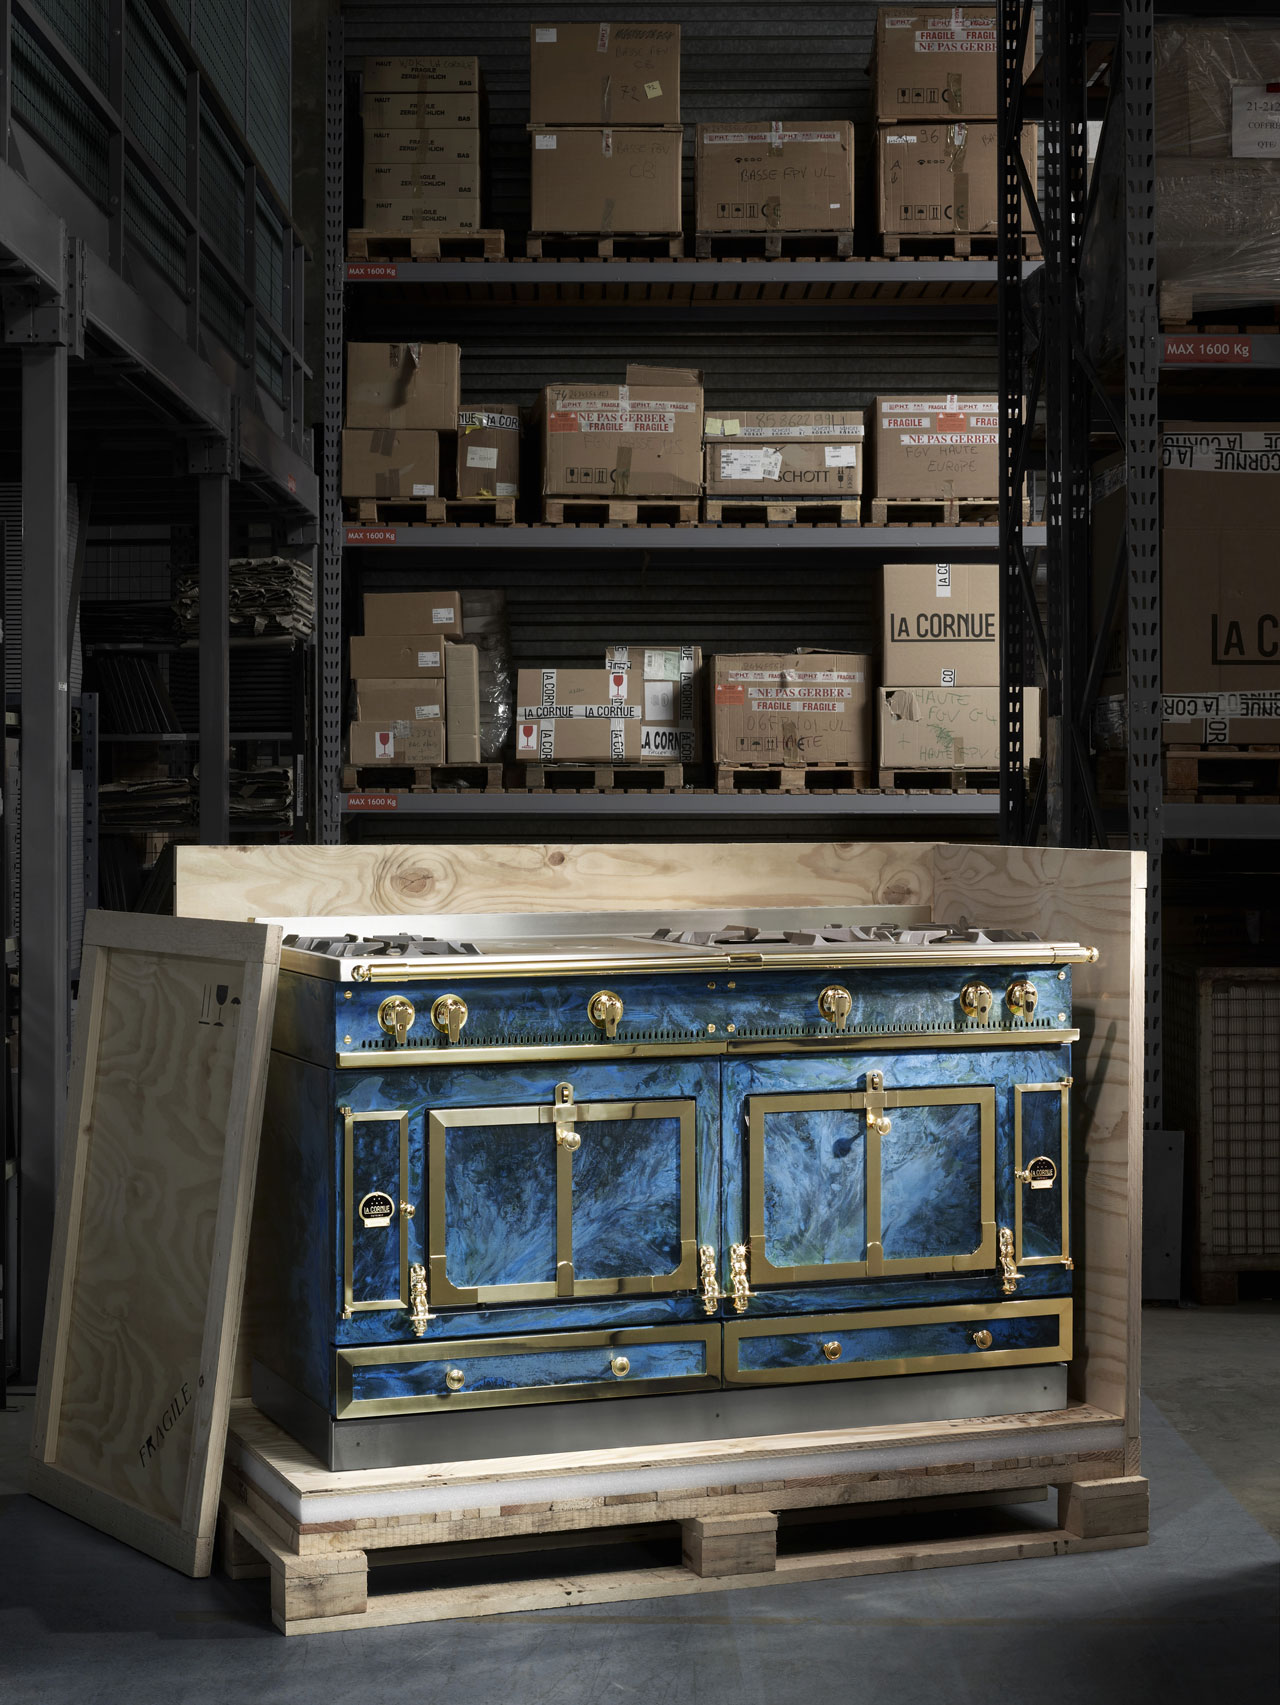 The Château kitchenby LexPott for La Cornue.Lex Pott has been working with oxidisedand polished brassto create beautiful electric blue textures.